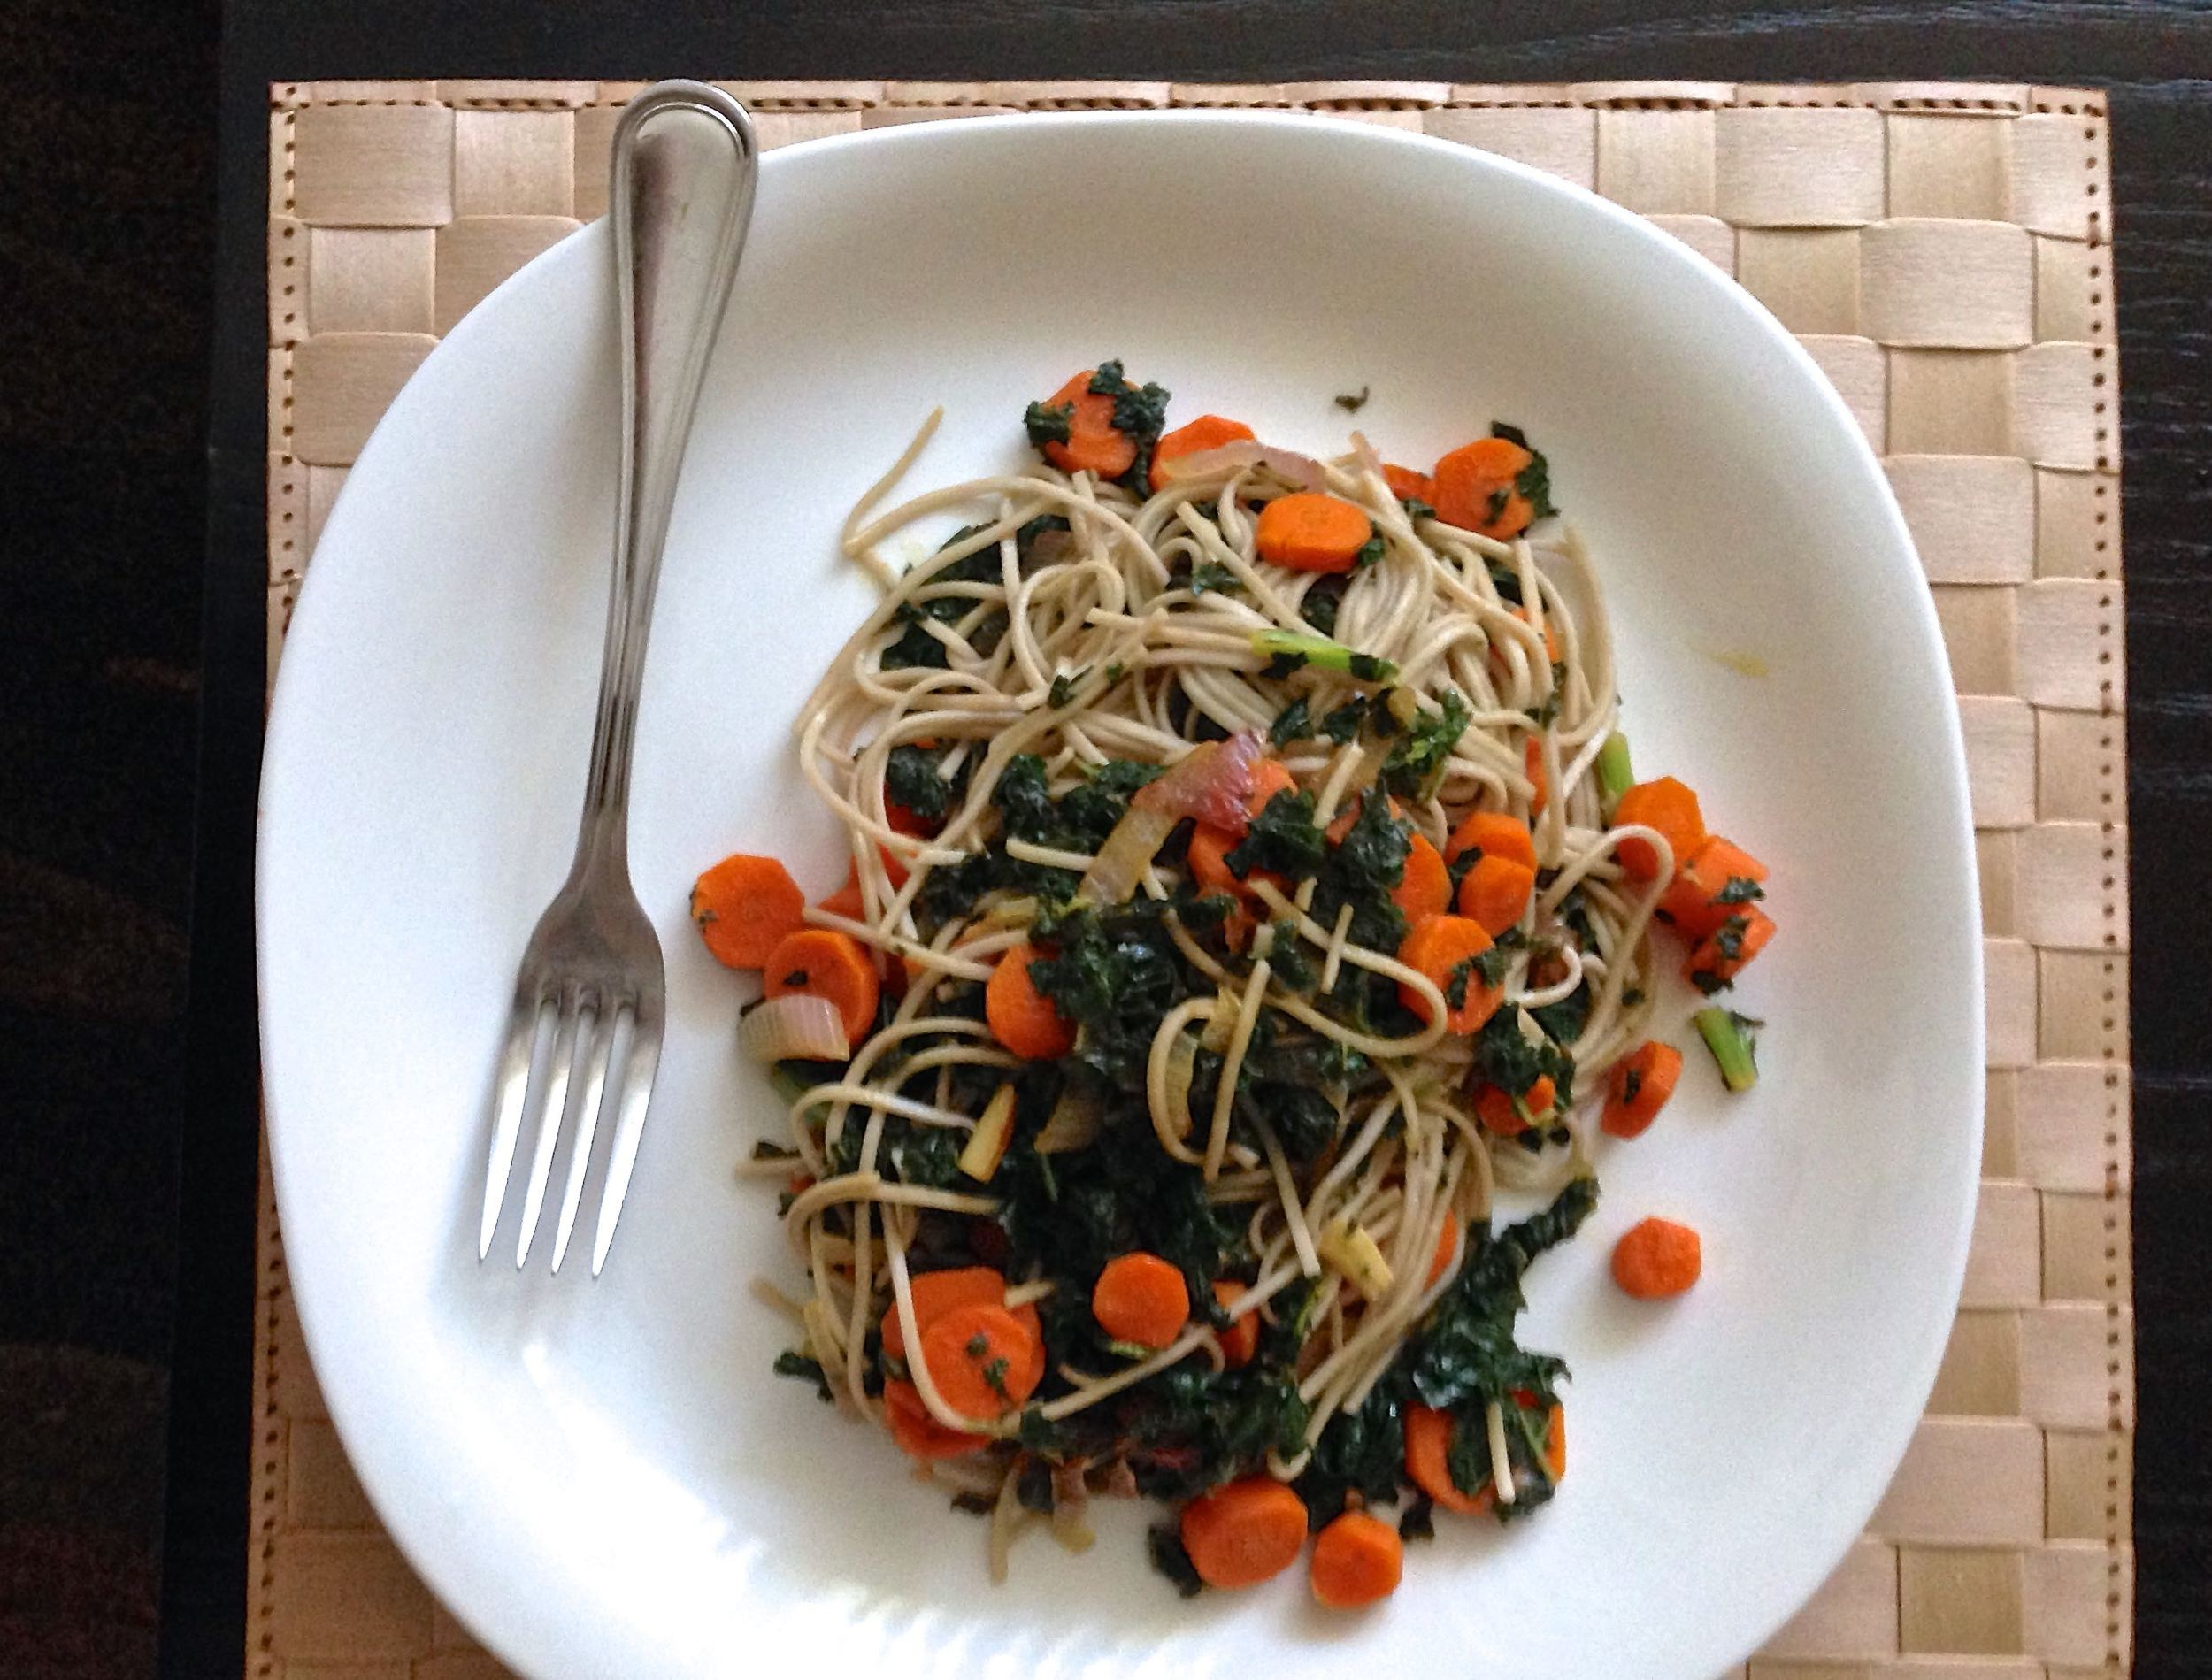 Soba noodles with kale, carrots and tamari